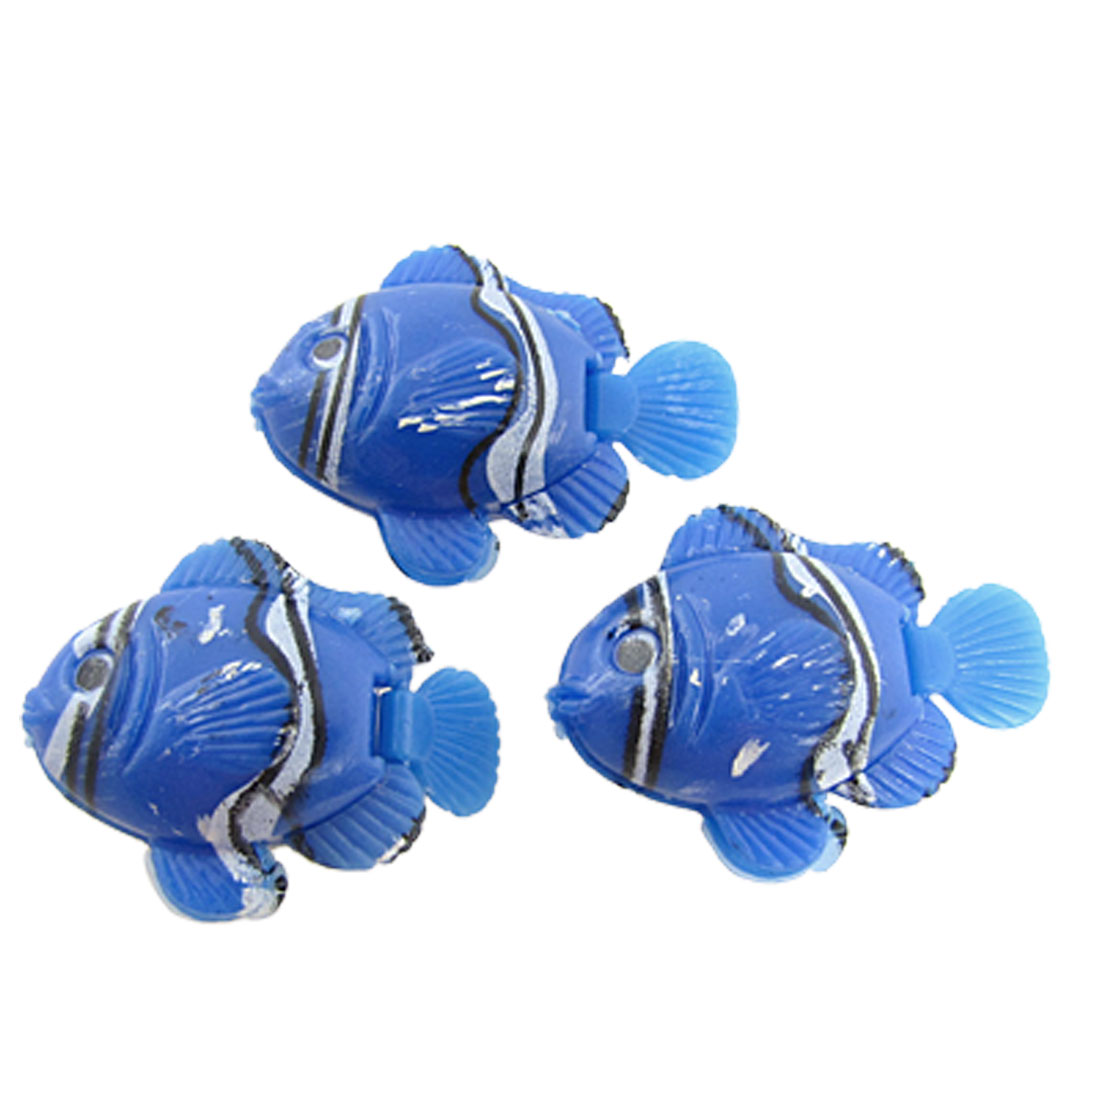 3 Pcs Mini Blue Plastic Floating Tropical Fish Aquarium Ornament